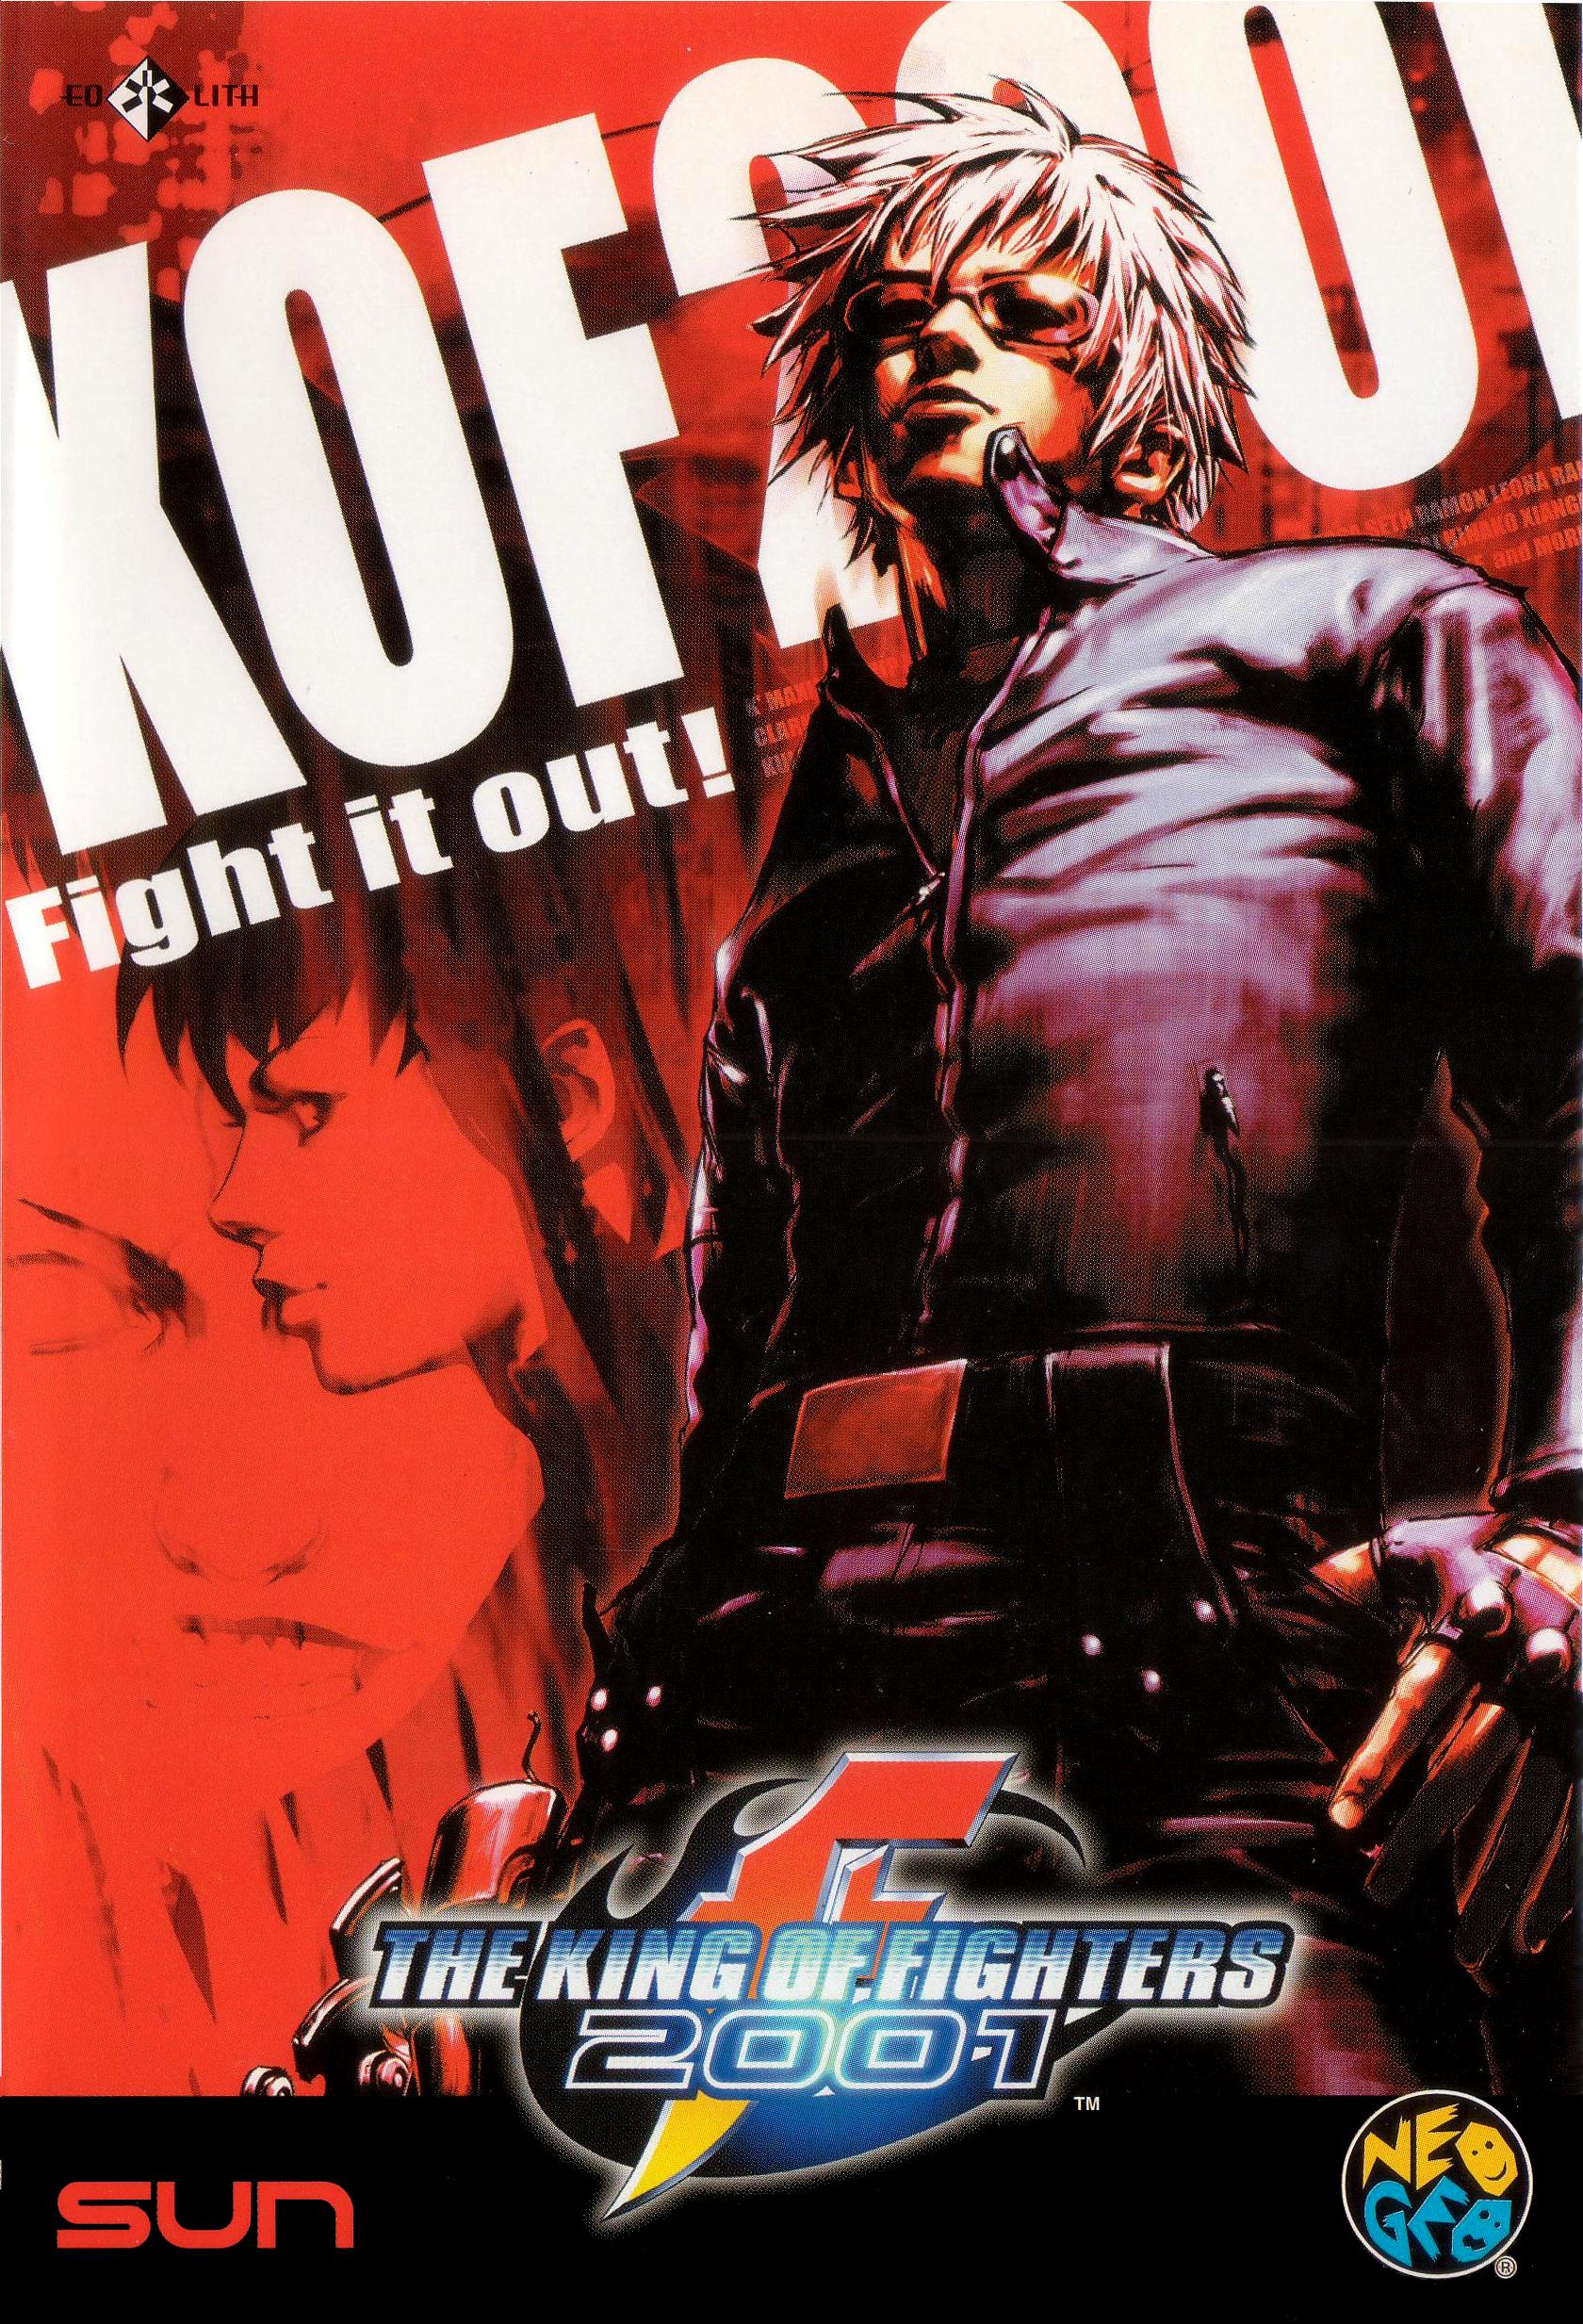 The King of Fighters 2001 | SNK Wiki | FANDOM powered by Wikia